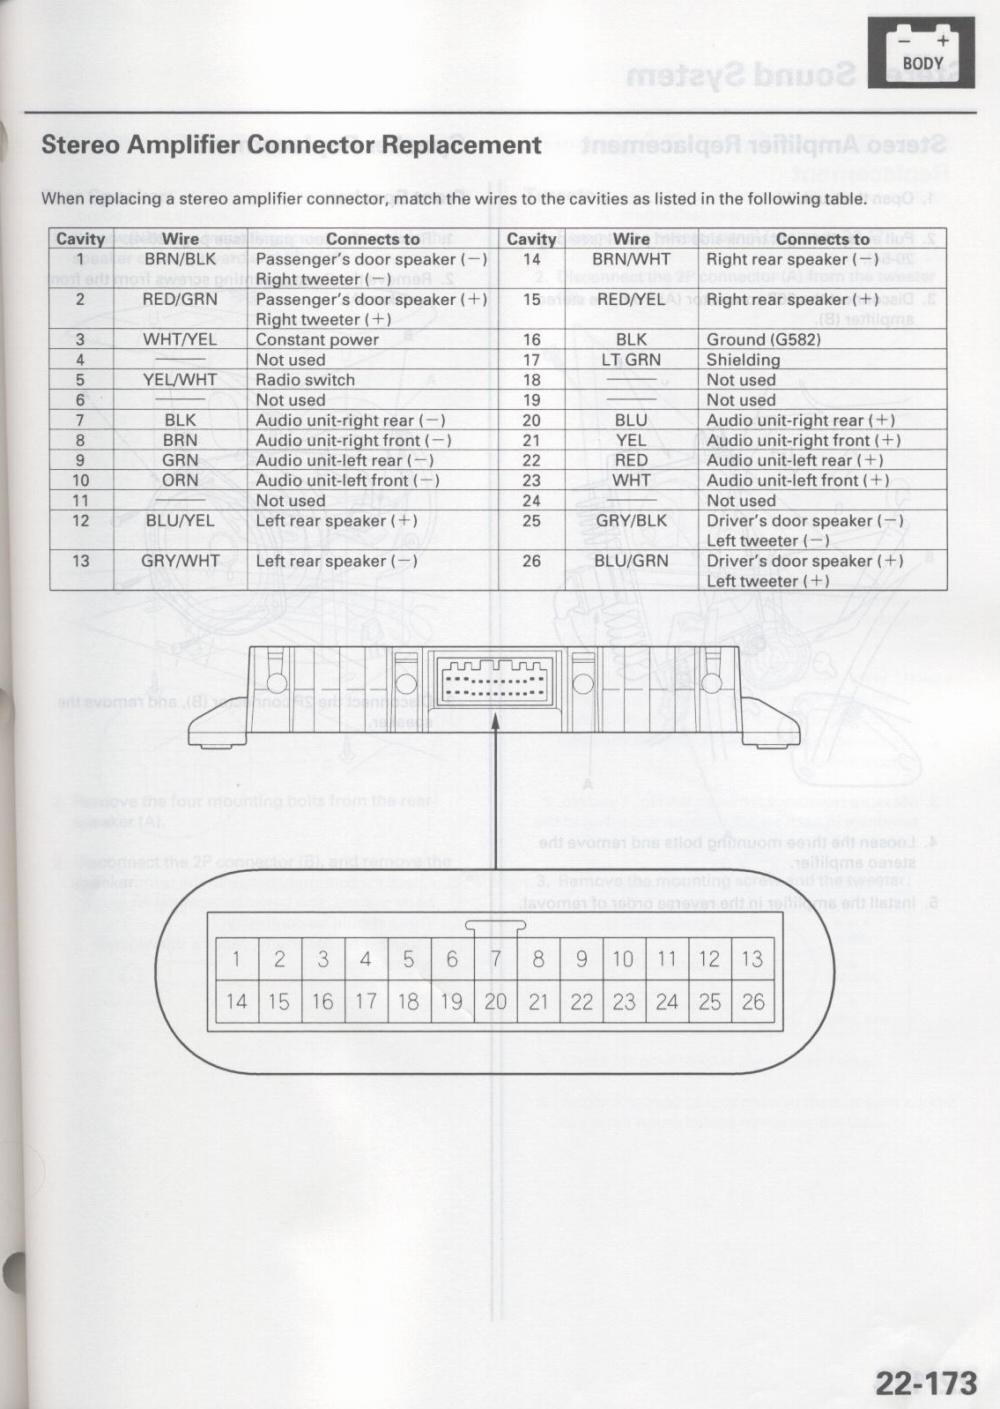 80 acura_2002_tl_car_stereo_amplifier_wiring_diagram_harness_b4a78060677f9e3c3d0cfa66a039b71f820cf13d 2003 acura cl type s stereo wiring diagram acurazine acura acura tsx wiring diagram at creativeand.co